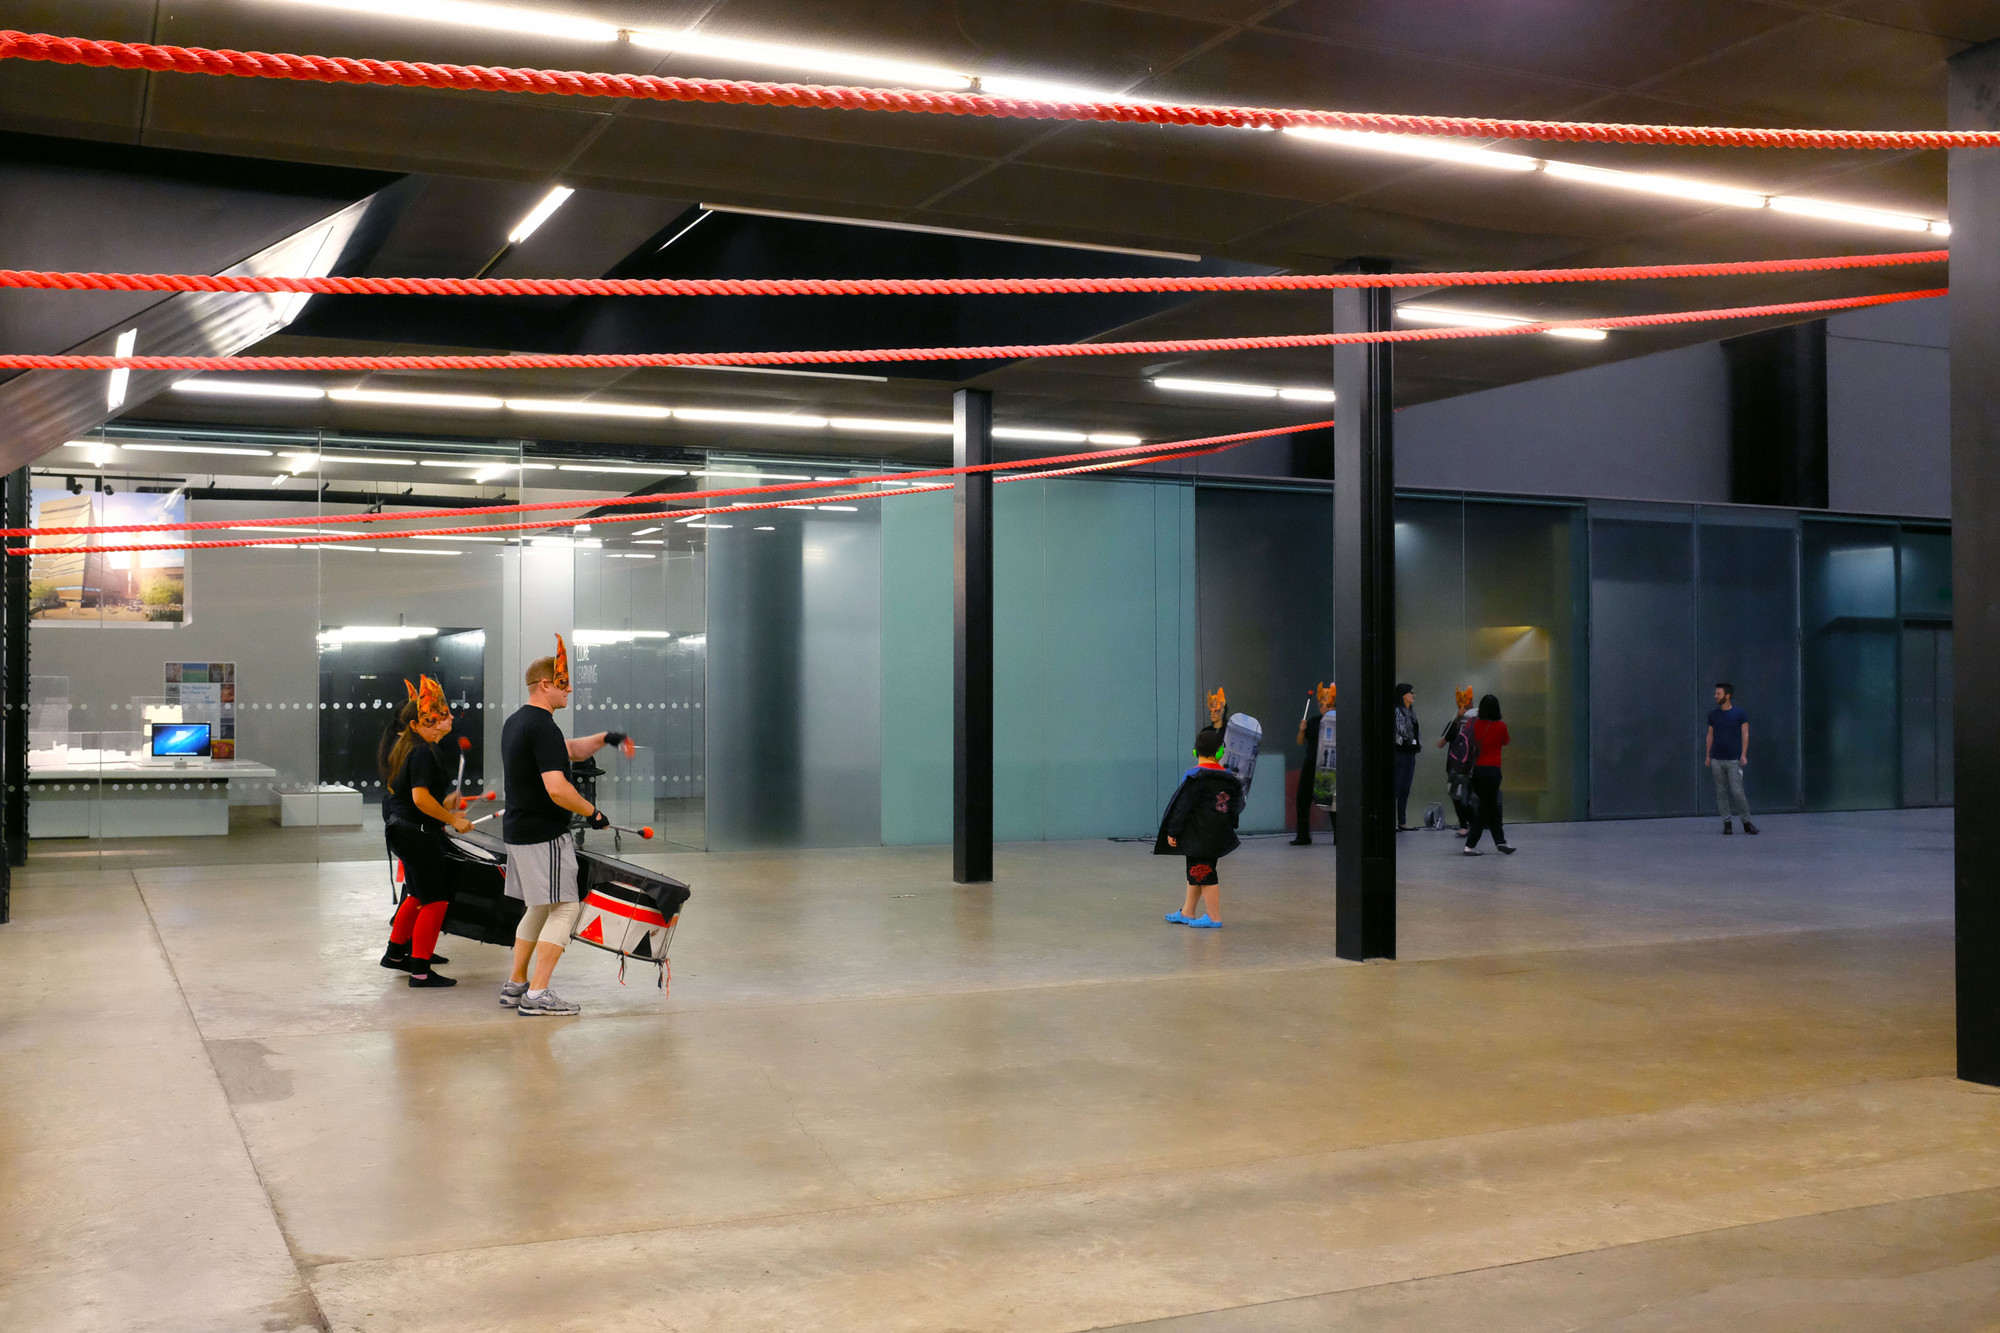 Gia Wolff Transforms The Tate Modern With Canopy Of RopesC John Hartmann Freecell